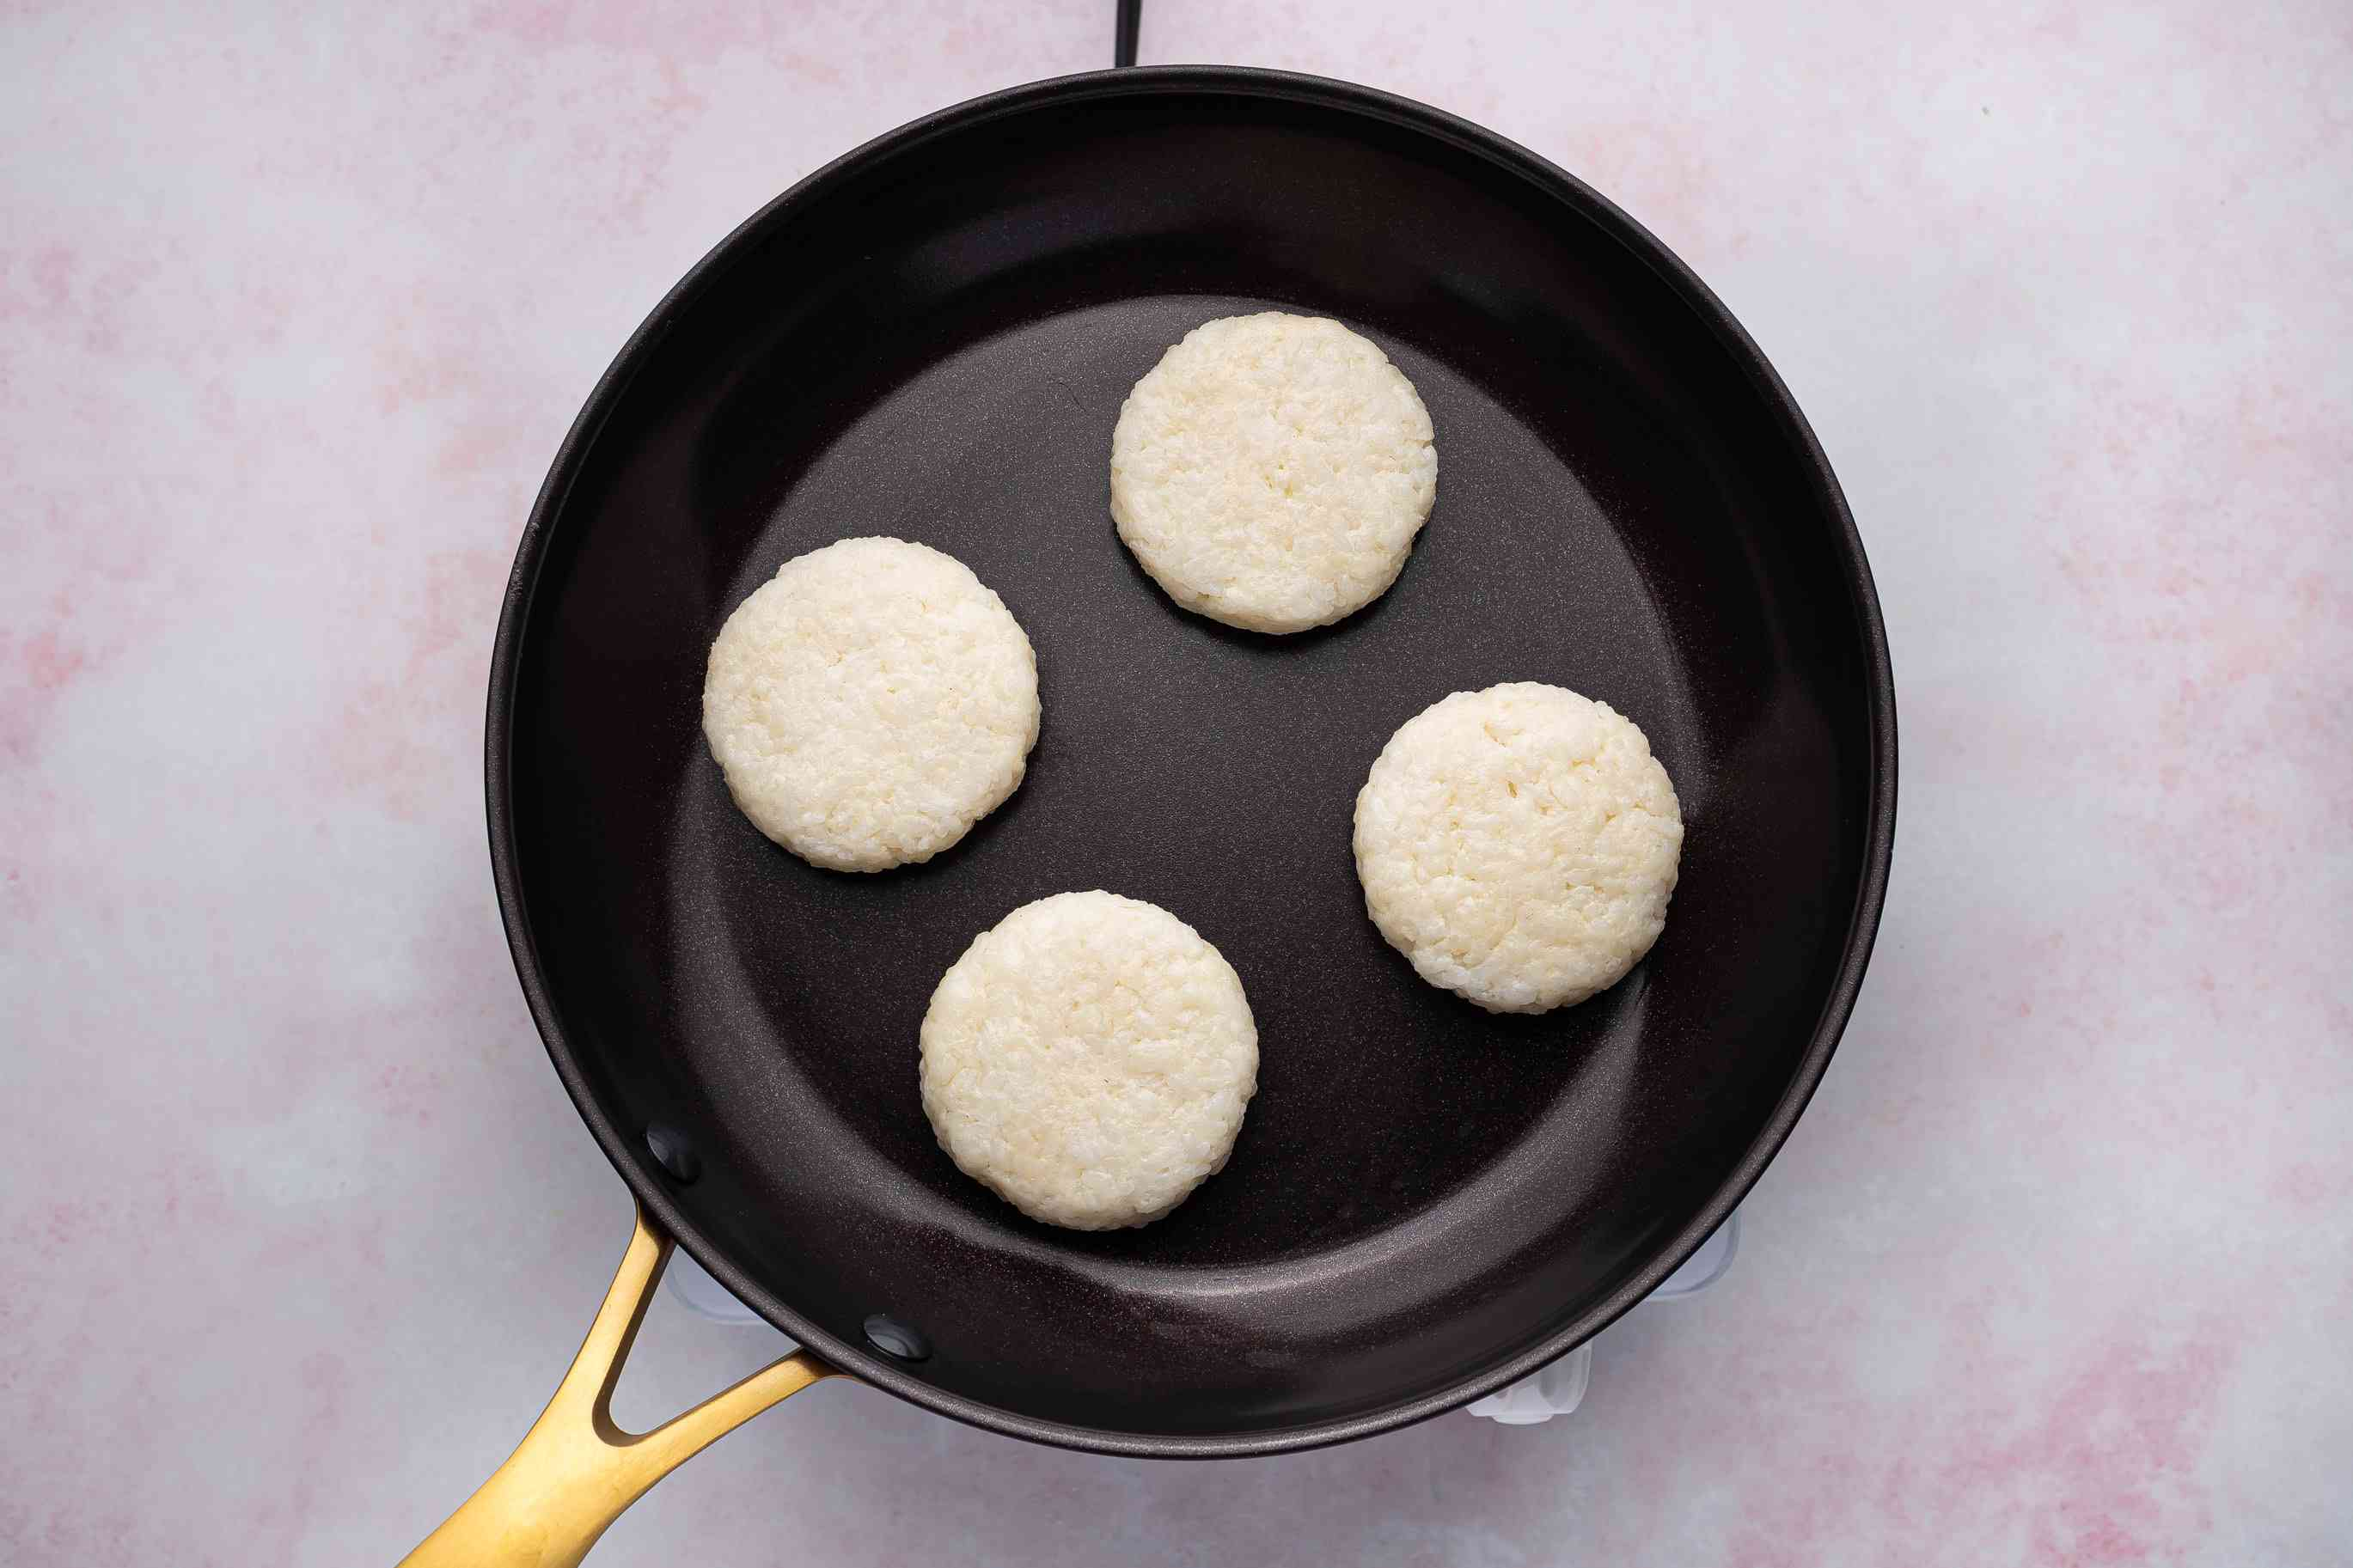 rice cakes frying in a skillet